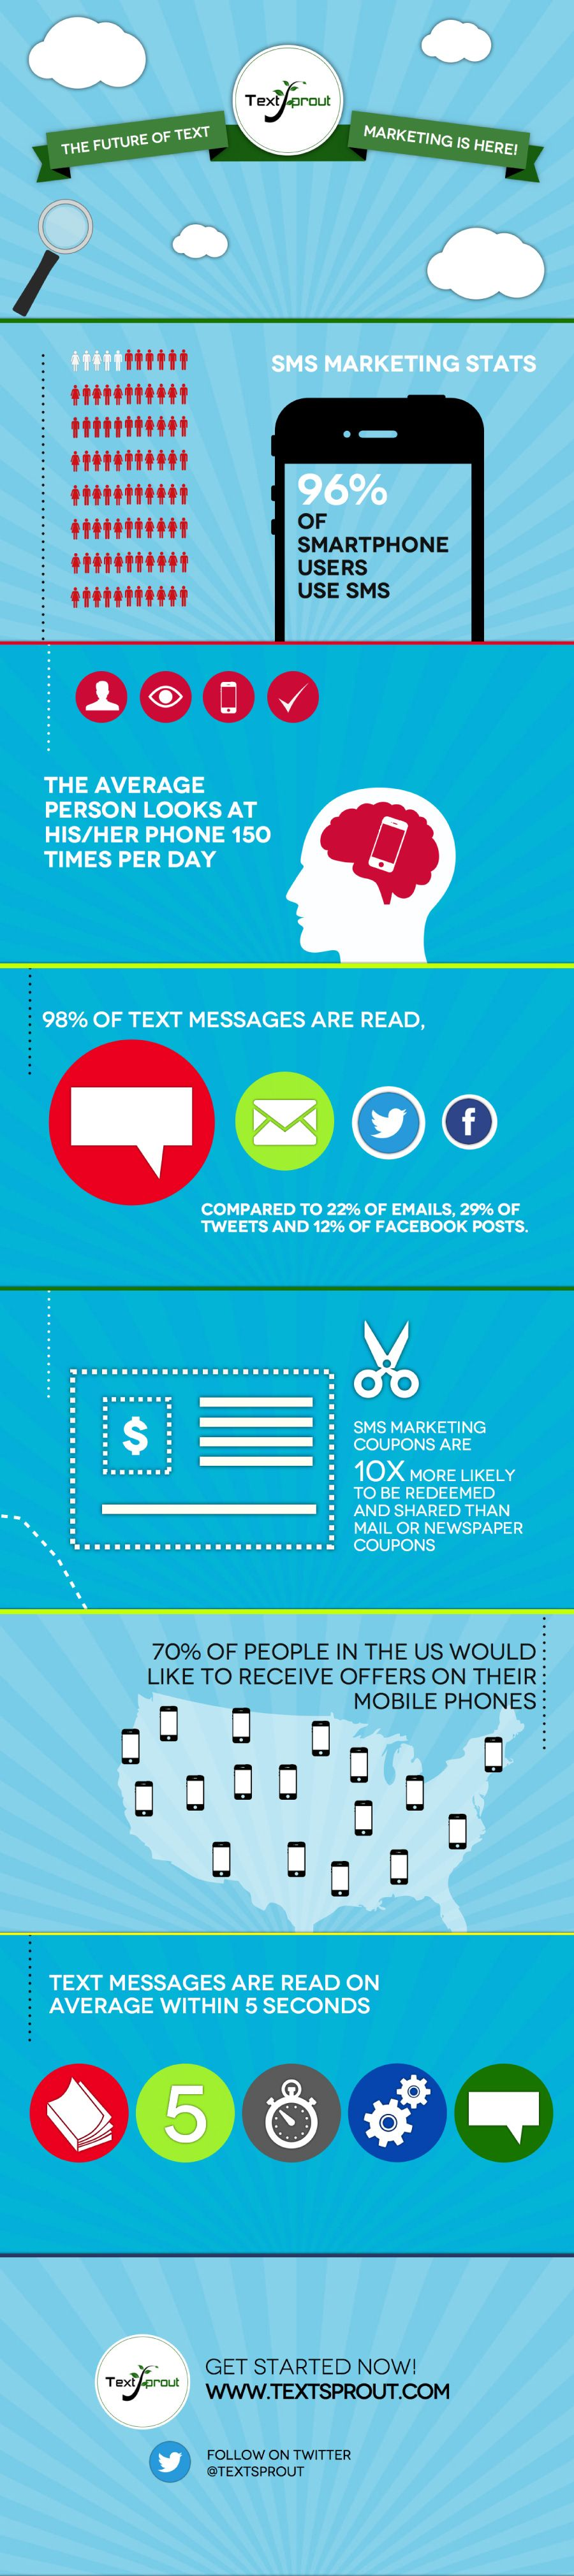 77 Mobile Marketing Stats You Need to Know (September 2013